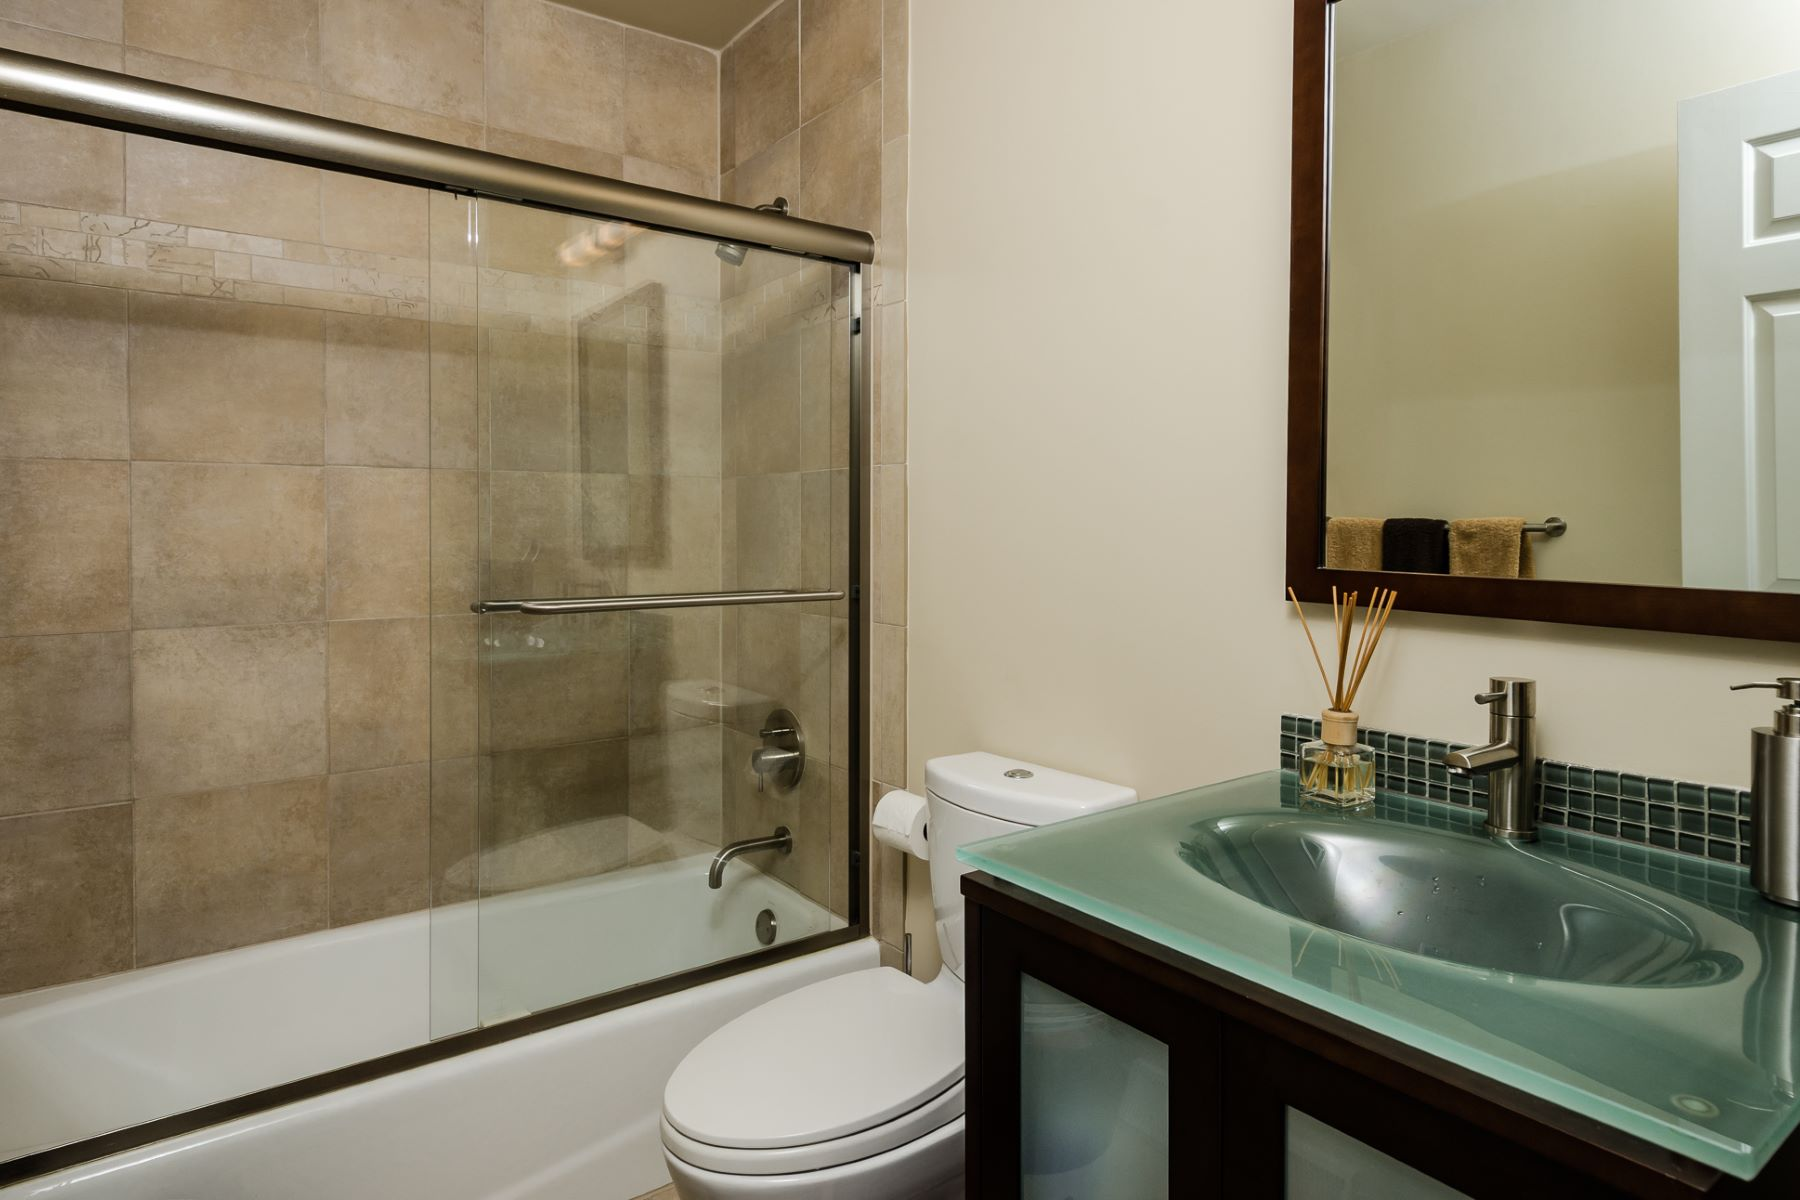 Additional photo for property listing at Buyer Friendly - Hopewell Township 101 West Shore Drive 彭宁顿, 新泽西州 08534 美国